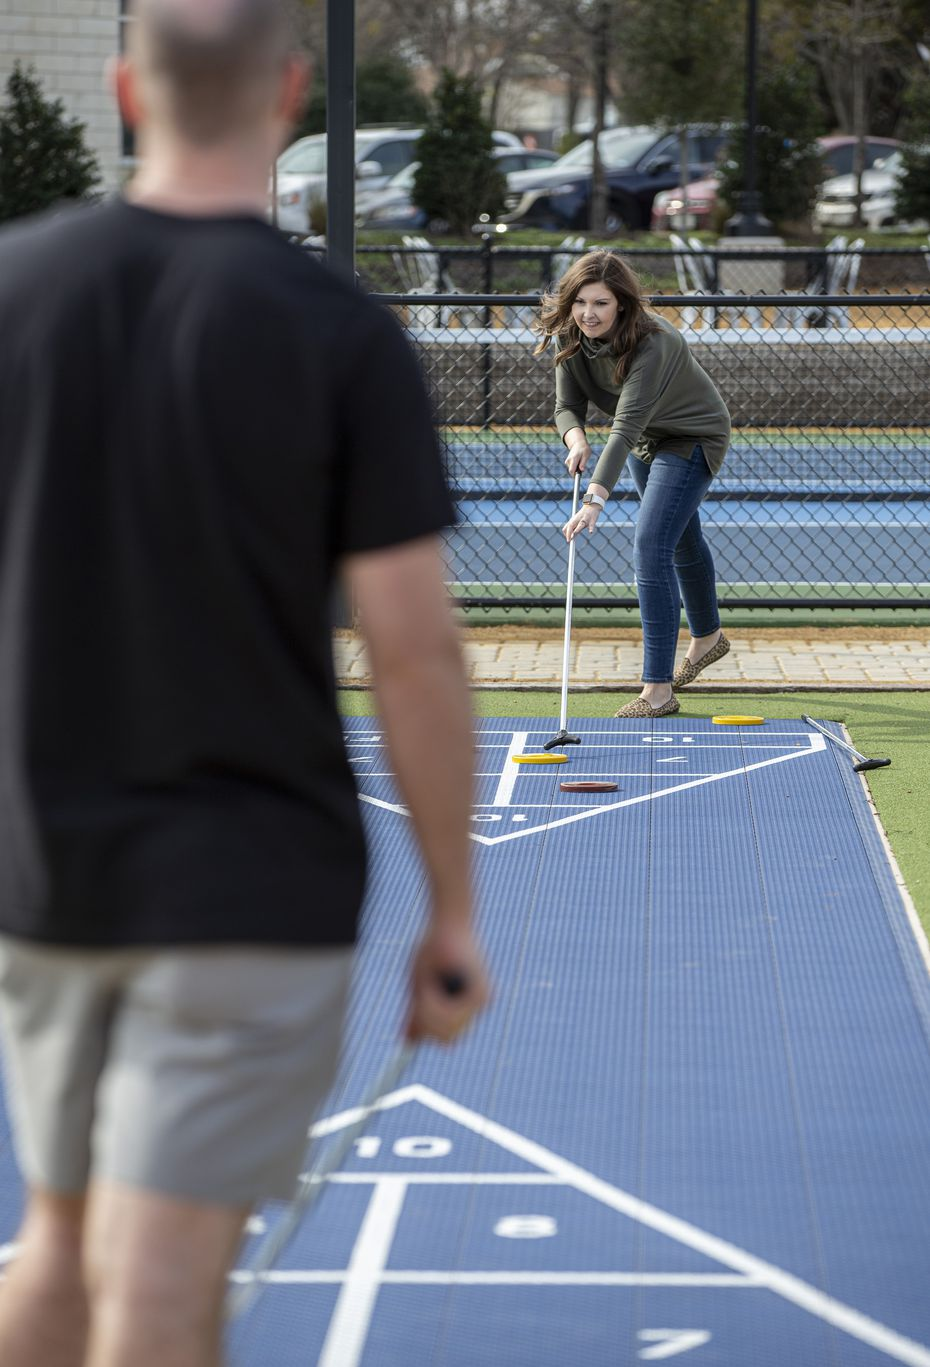 Kyle and Kaitlyn Tatum play a game of shuffleboard outside Standard Service in Heath.